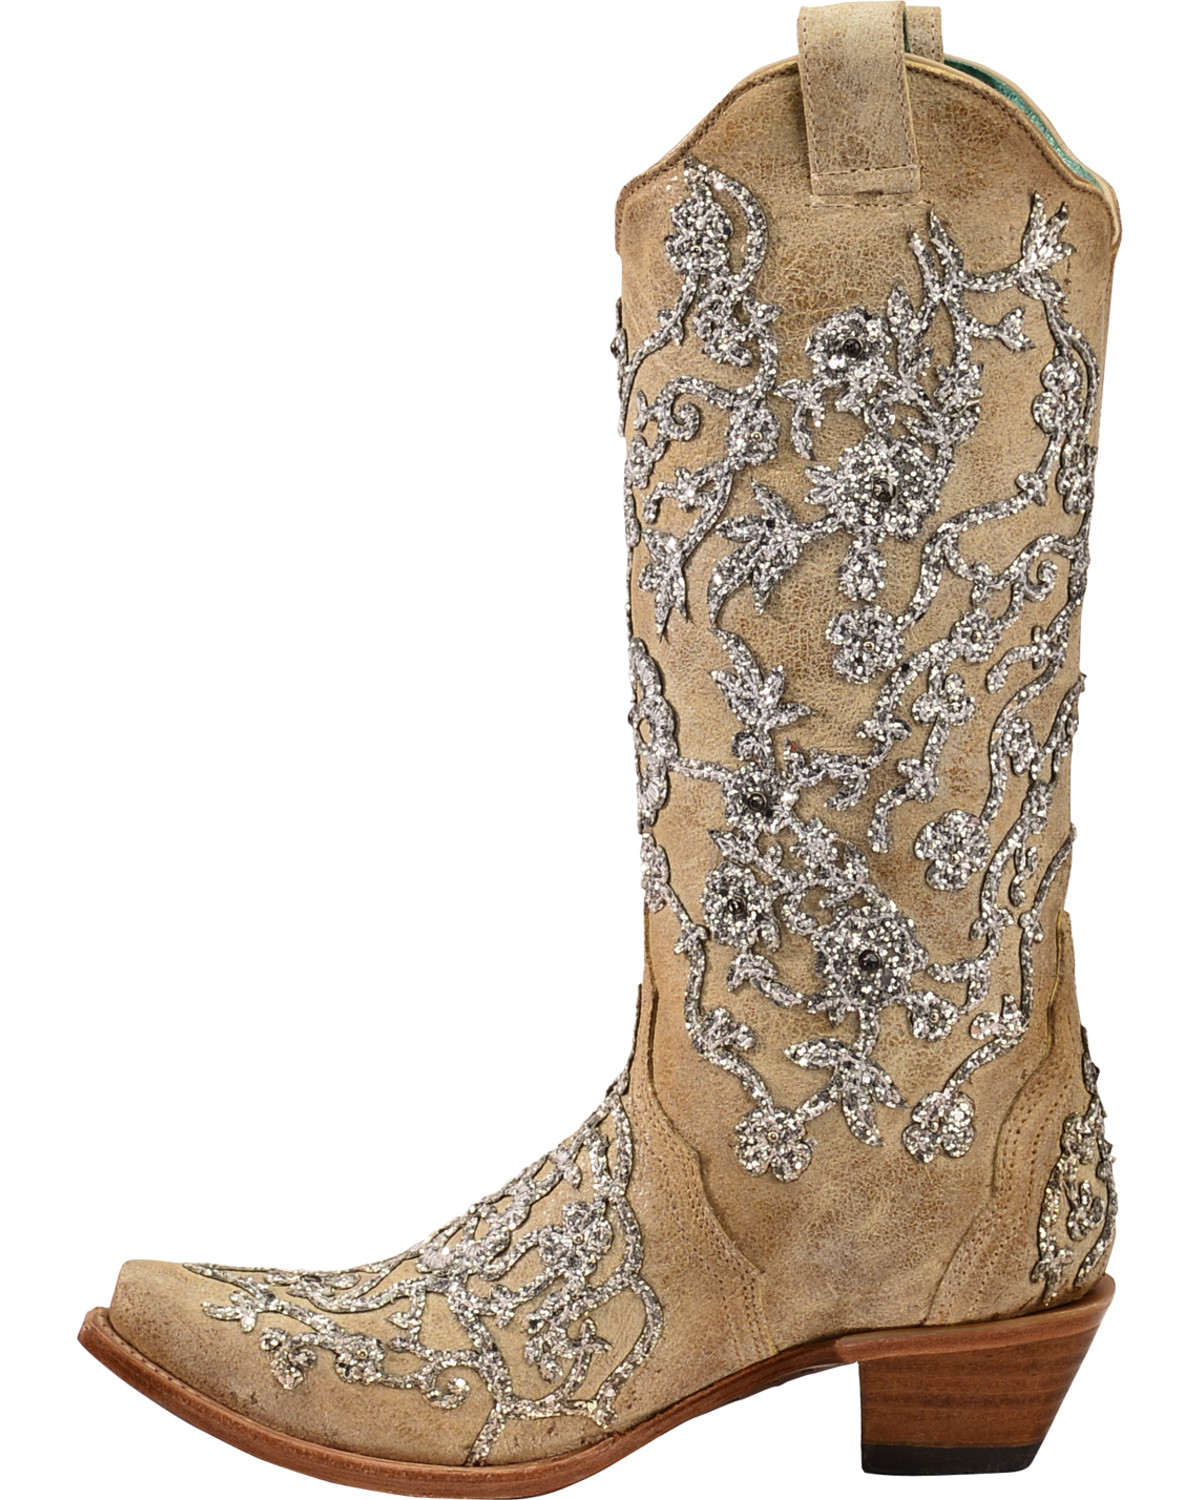 Corral Women S Bone Glitter Overlay Embroidery Amp Crystals